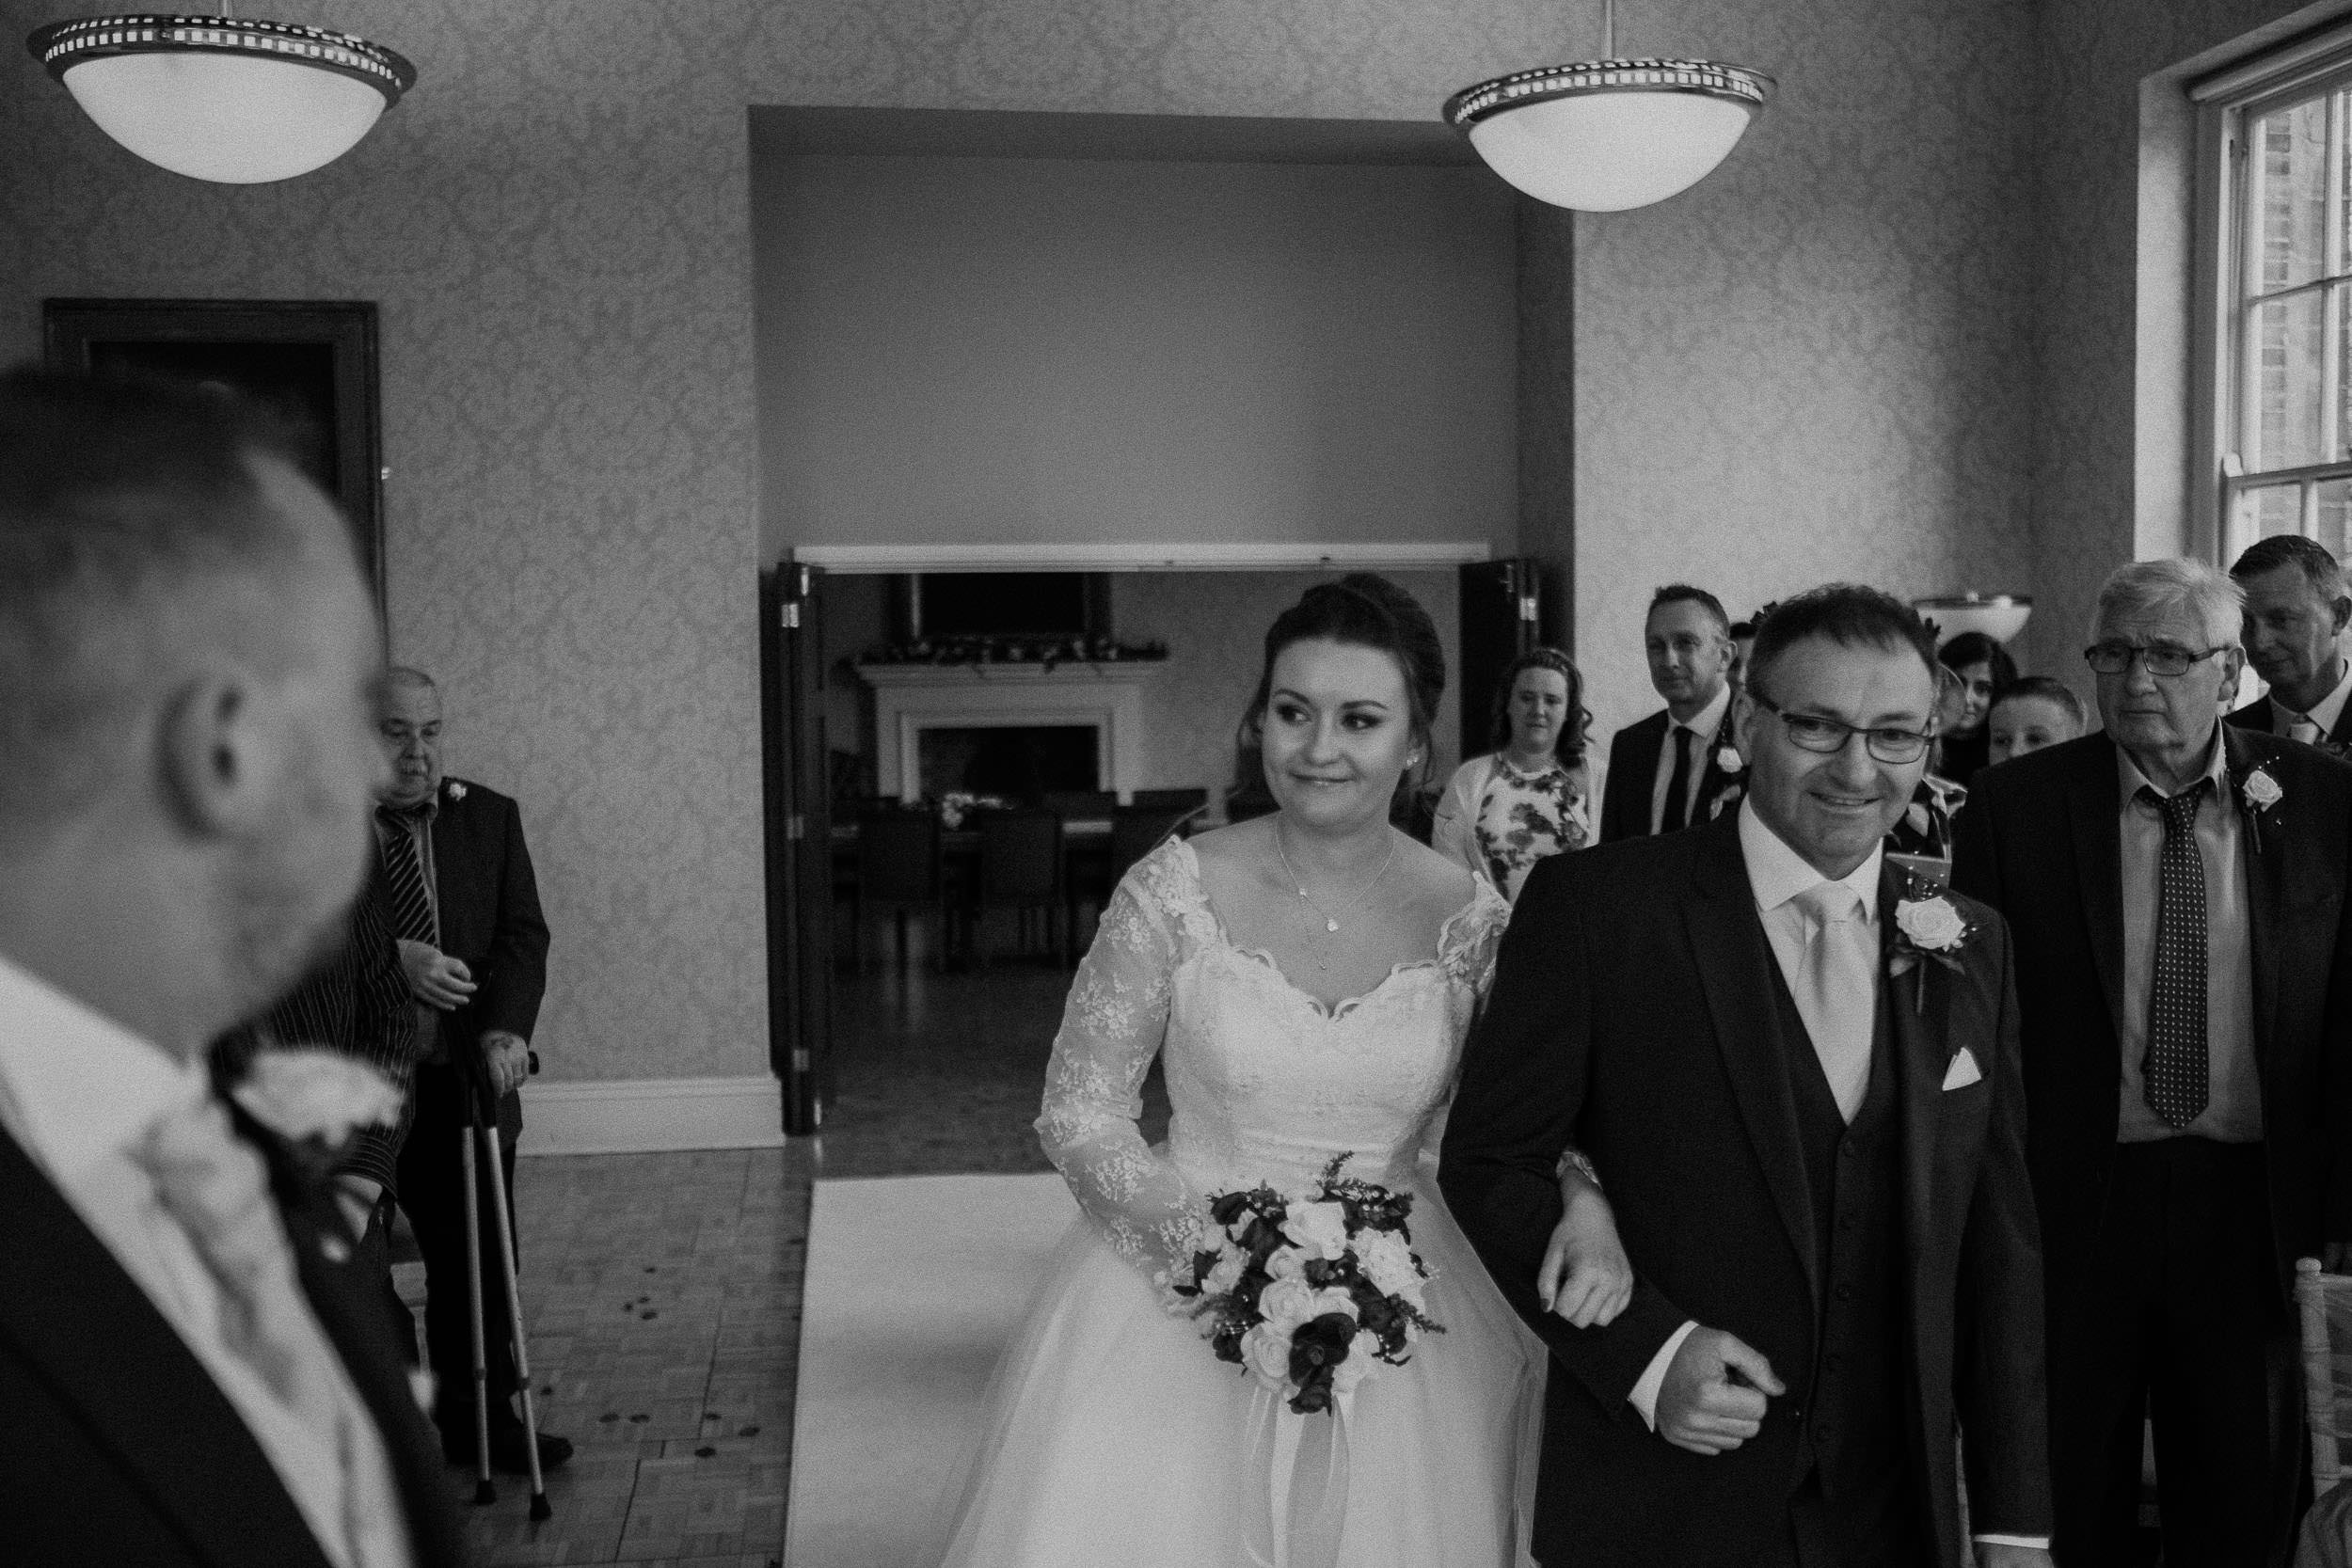 Black and white photo of bride smiling at groom as she arrives for the wedding ceremony